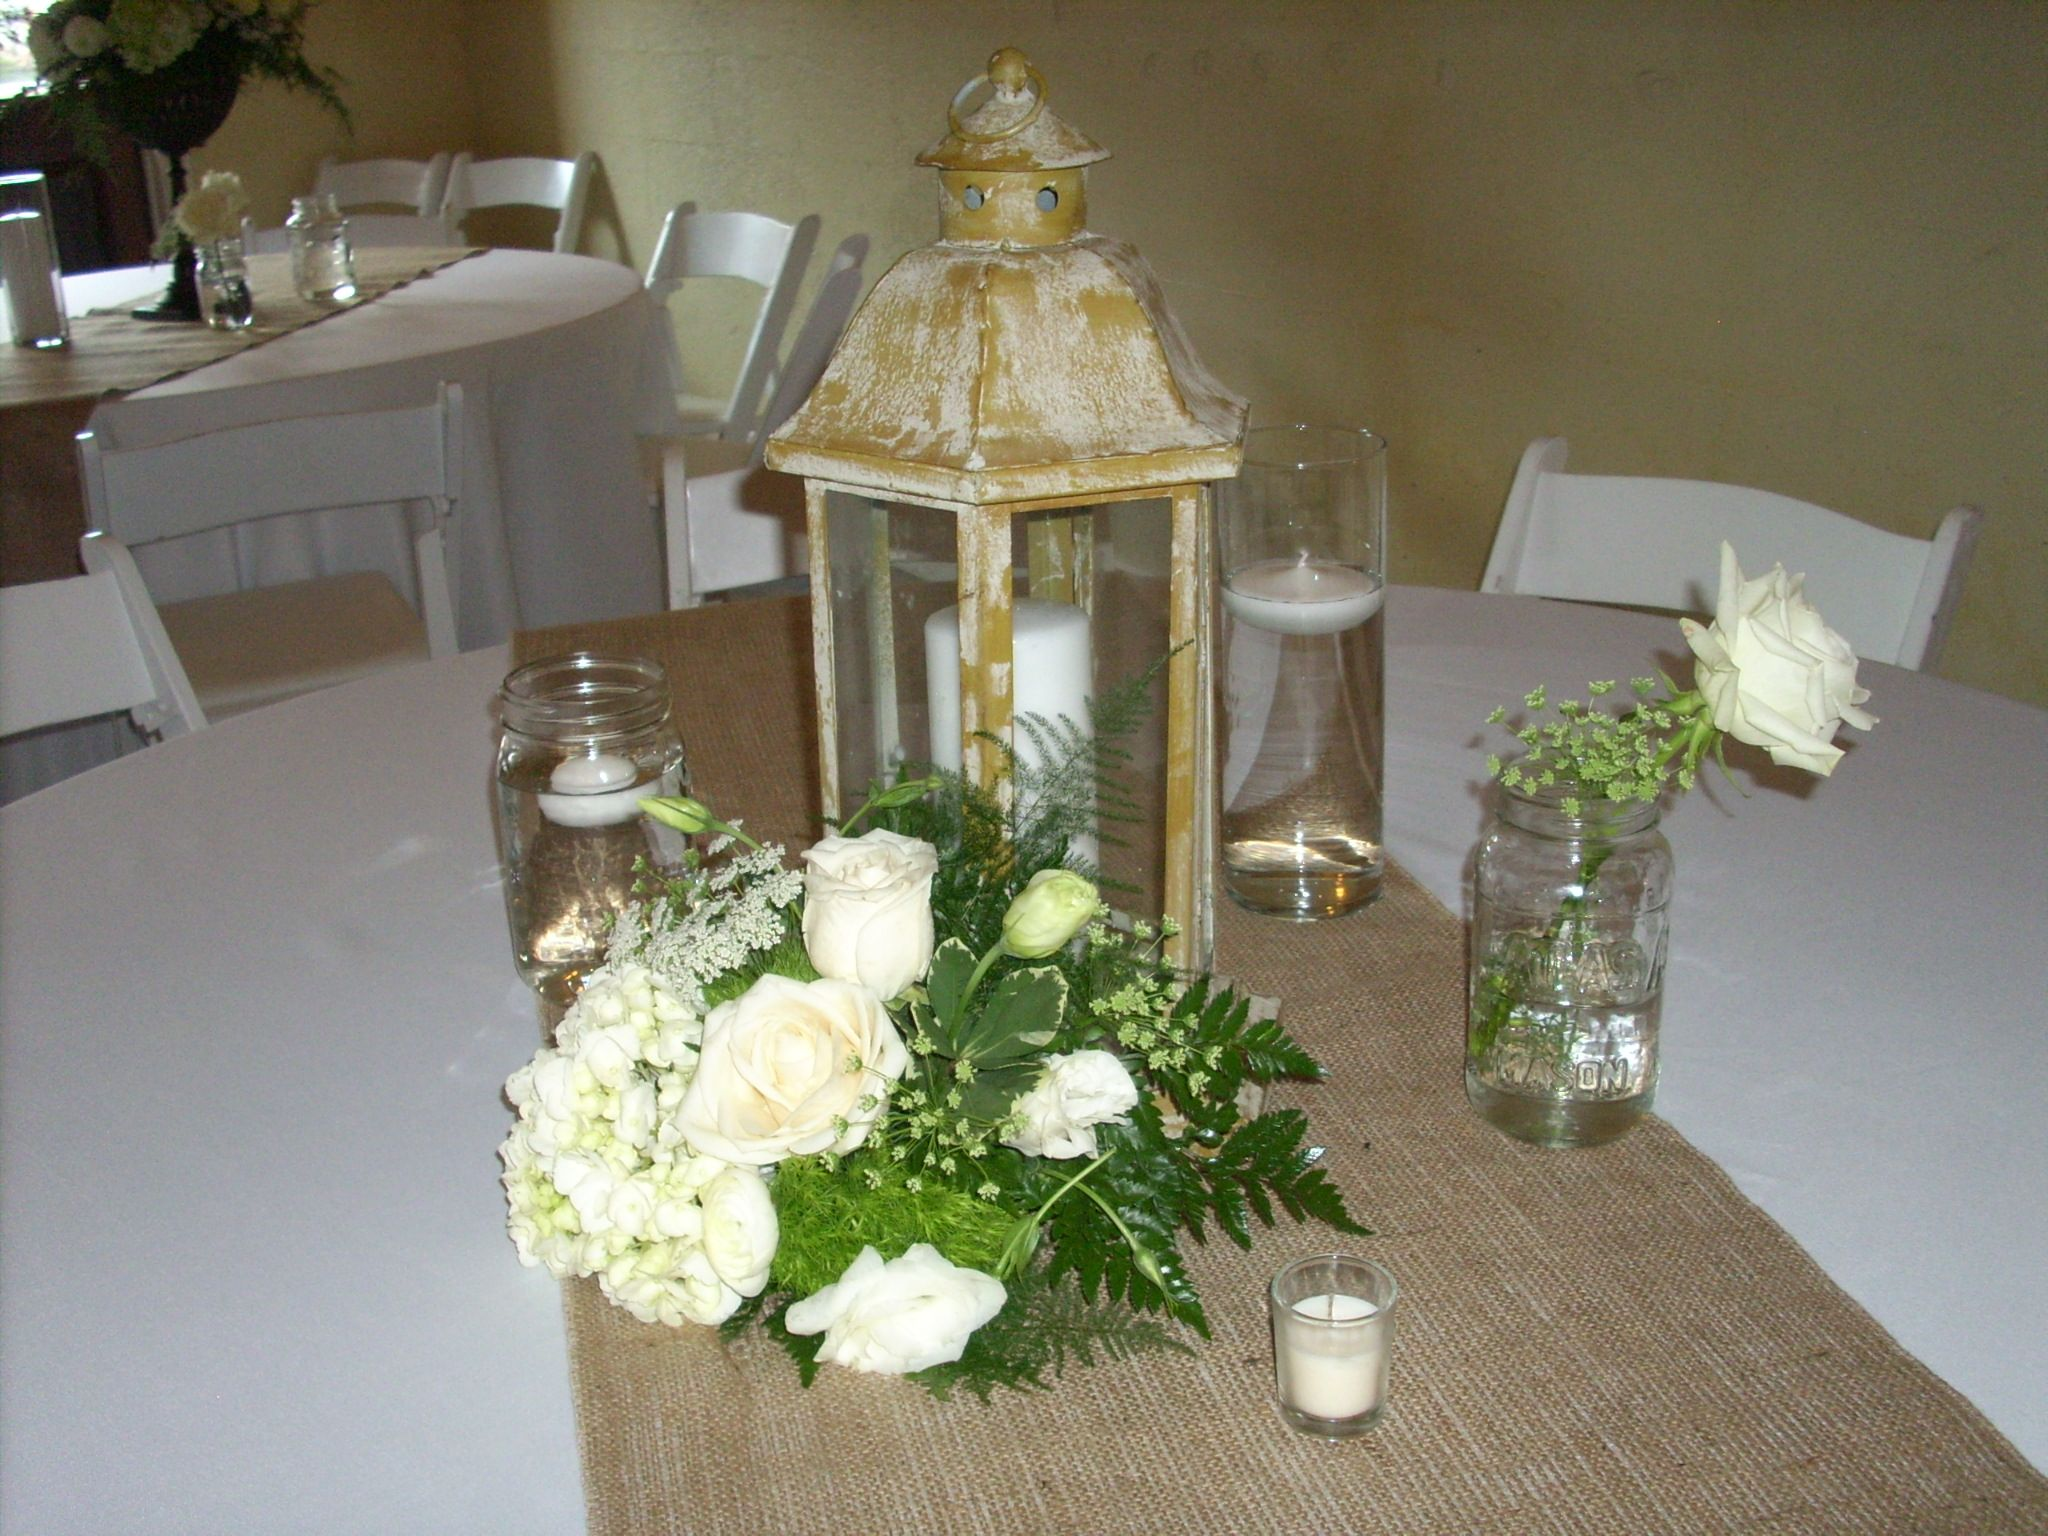 Wedding gate decoration ideas  Lantern Centerpiece Weddings Pinterest  Wedding Centerpieces